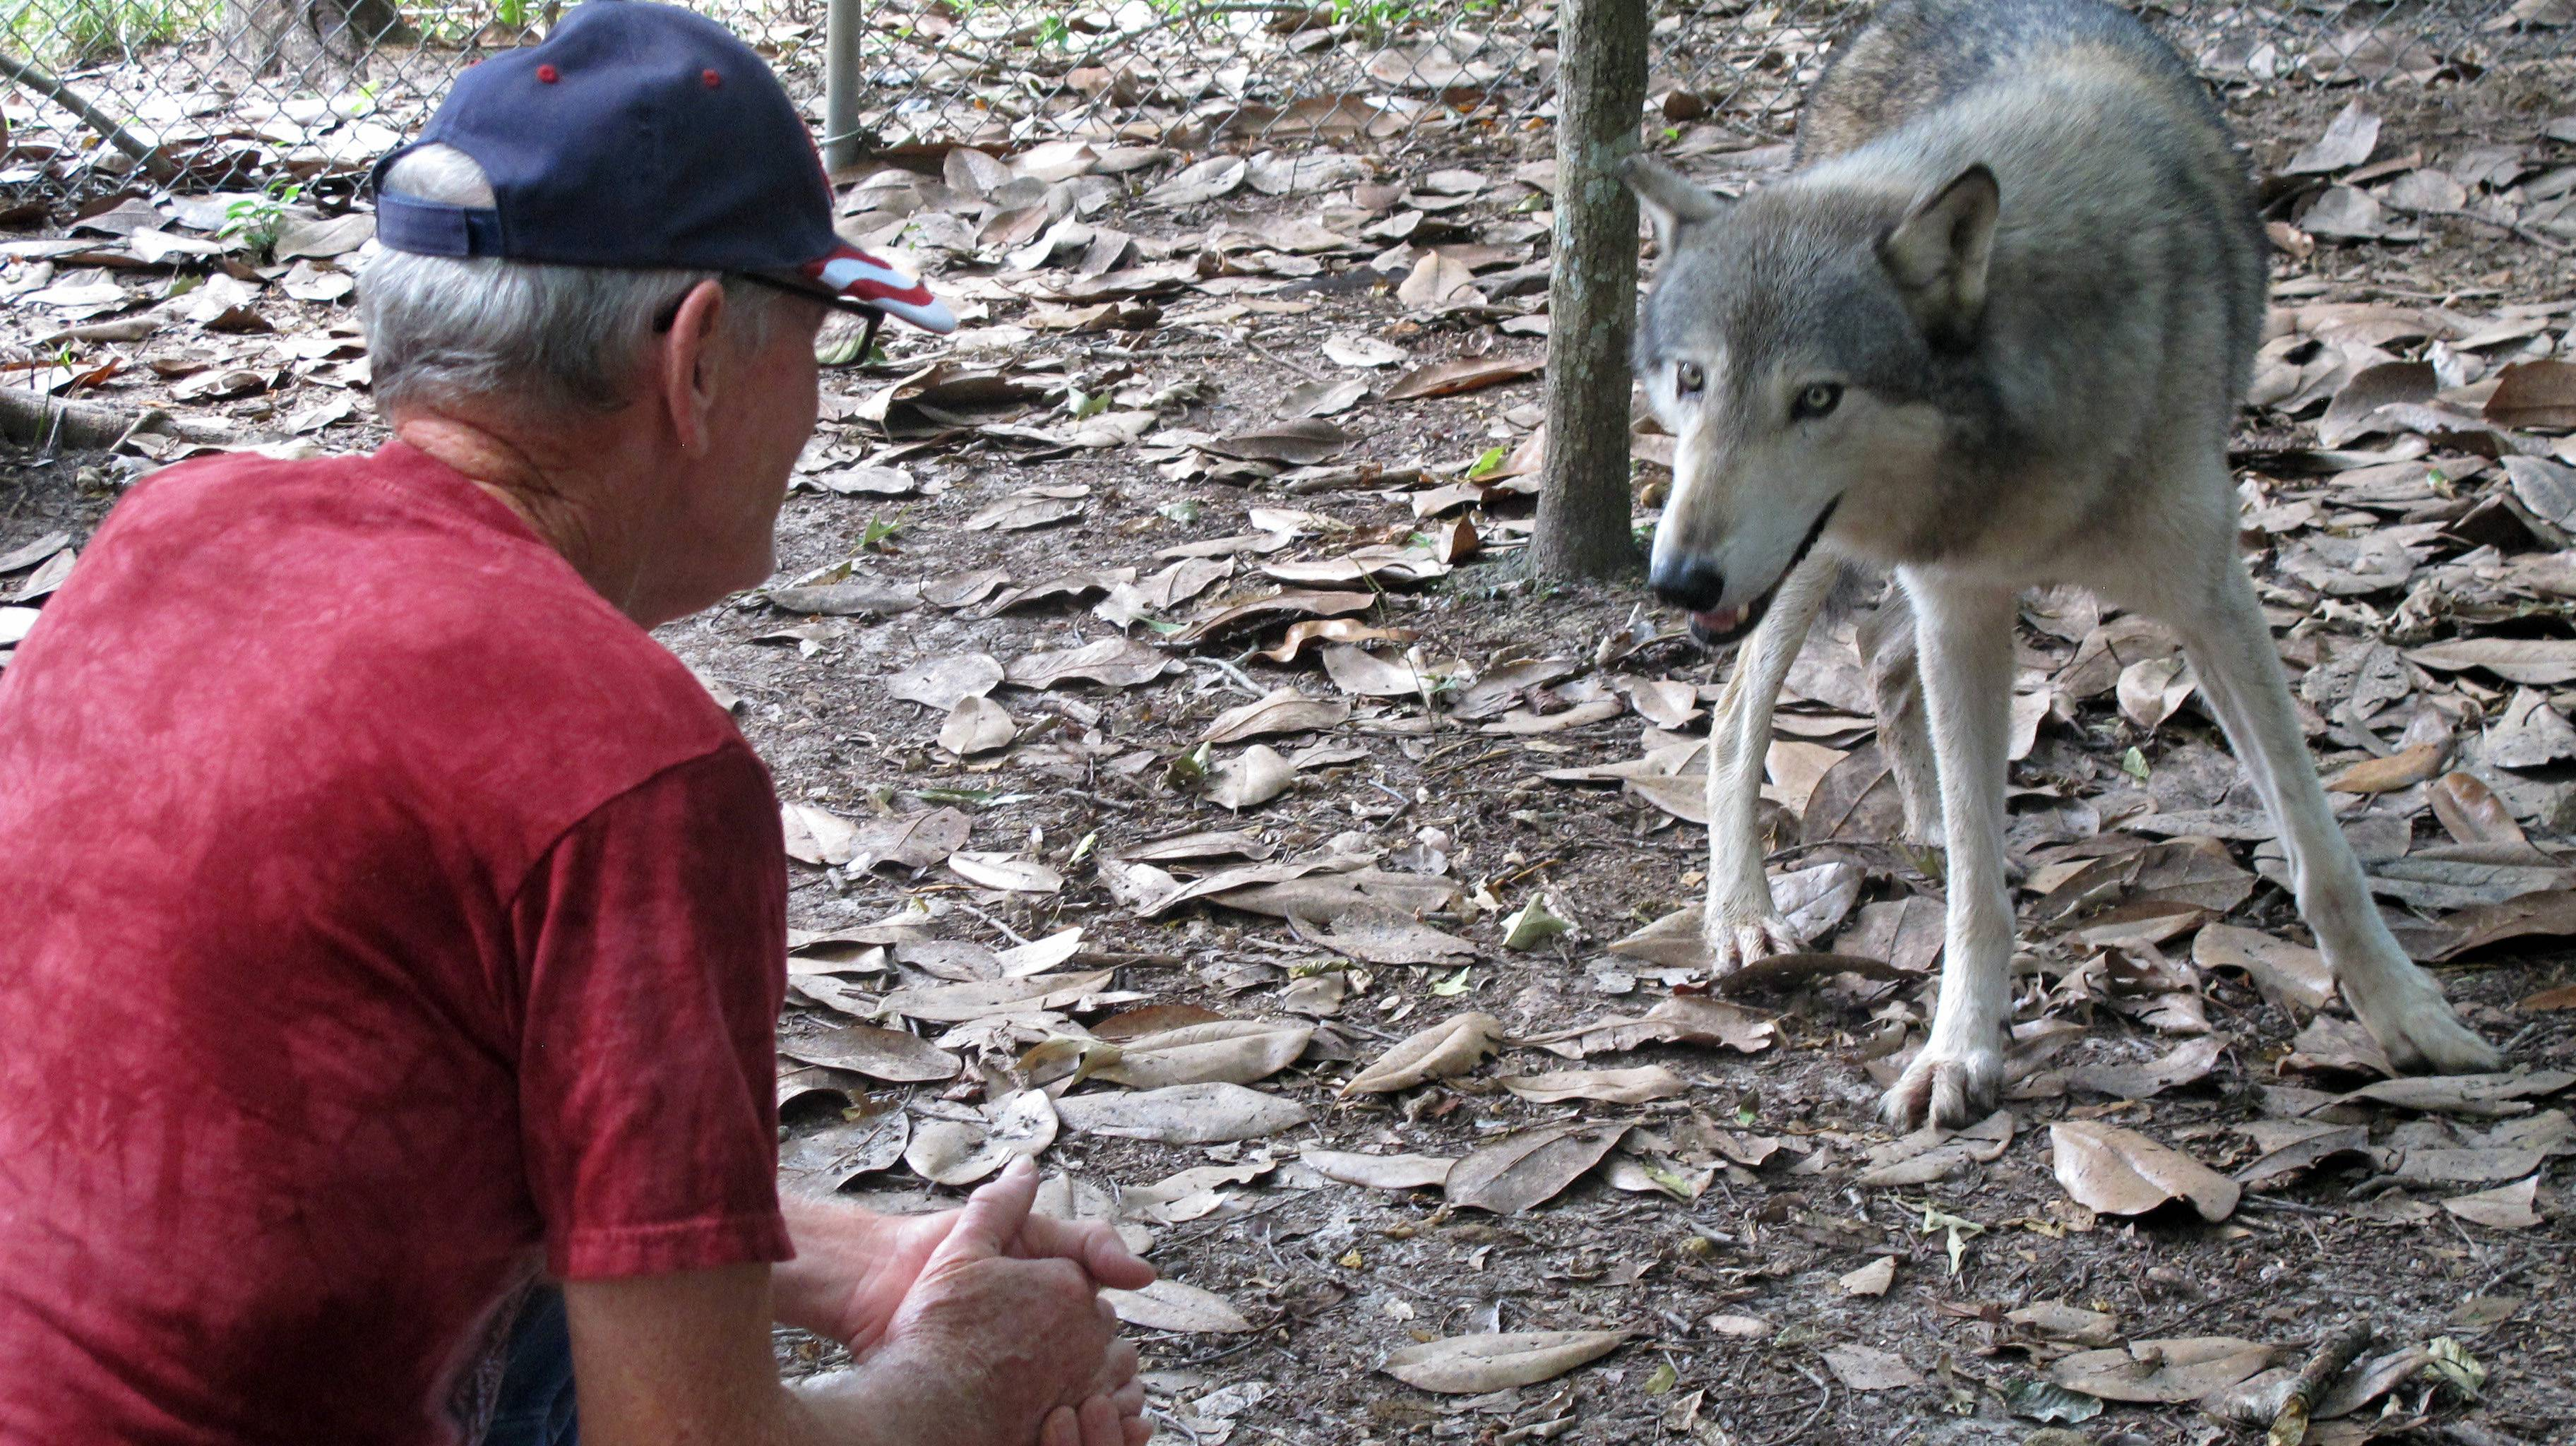 Wayne Watkins kneels near a wolf inside the Seacrest Wolf Preserve in Chipley, Florida. The 450-acre preserve was damaged during heavy rains that flooded the region in April.